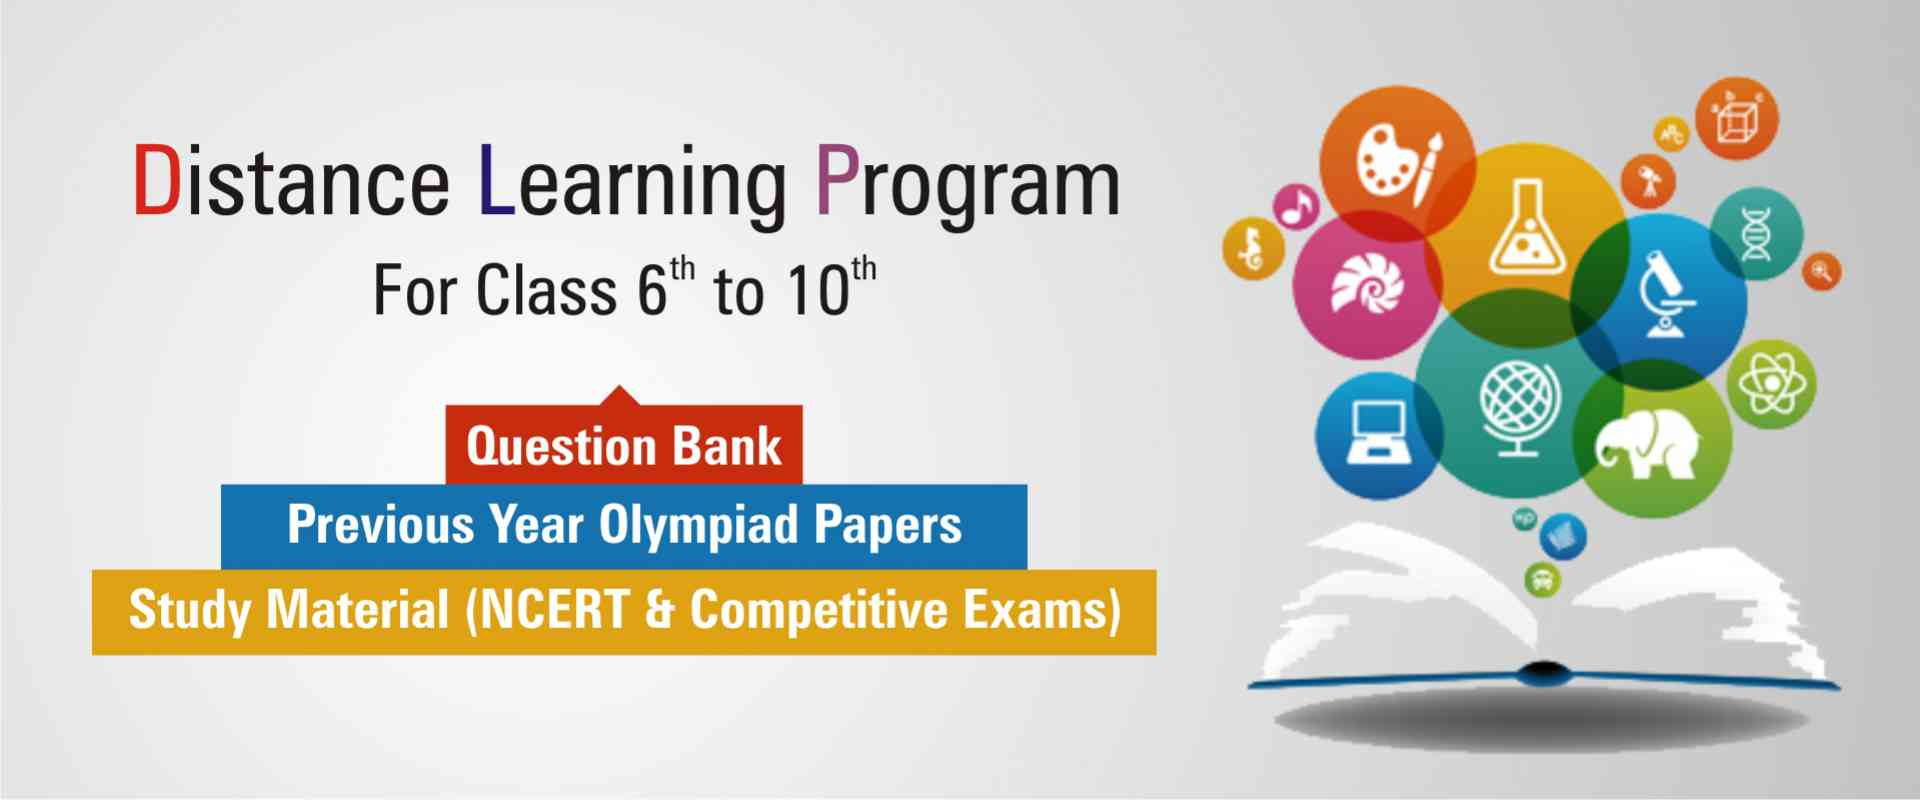 Distance Learning Program